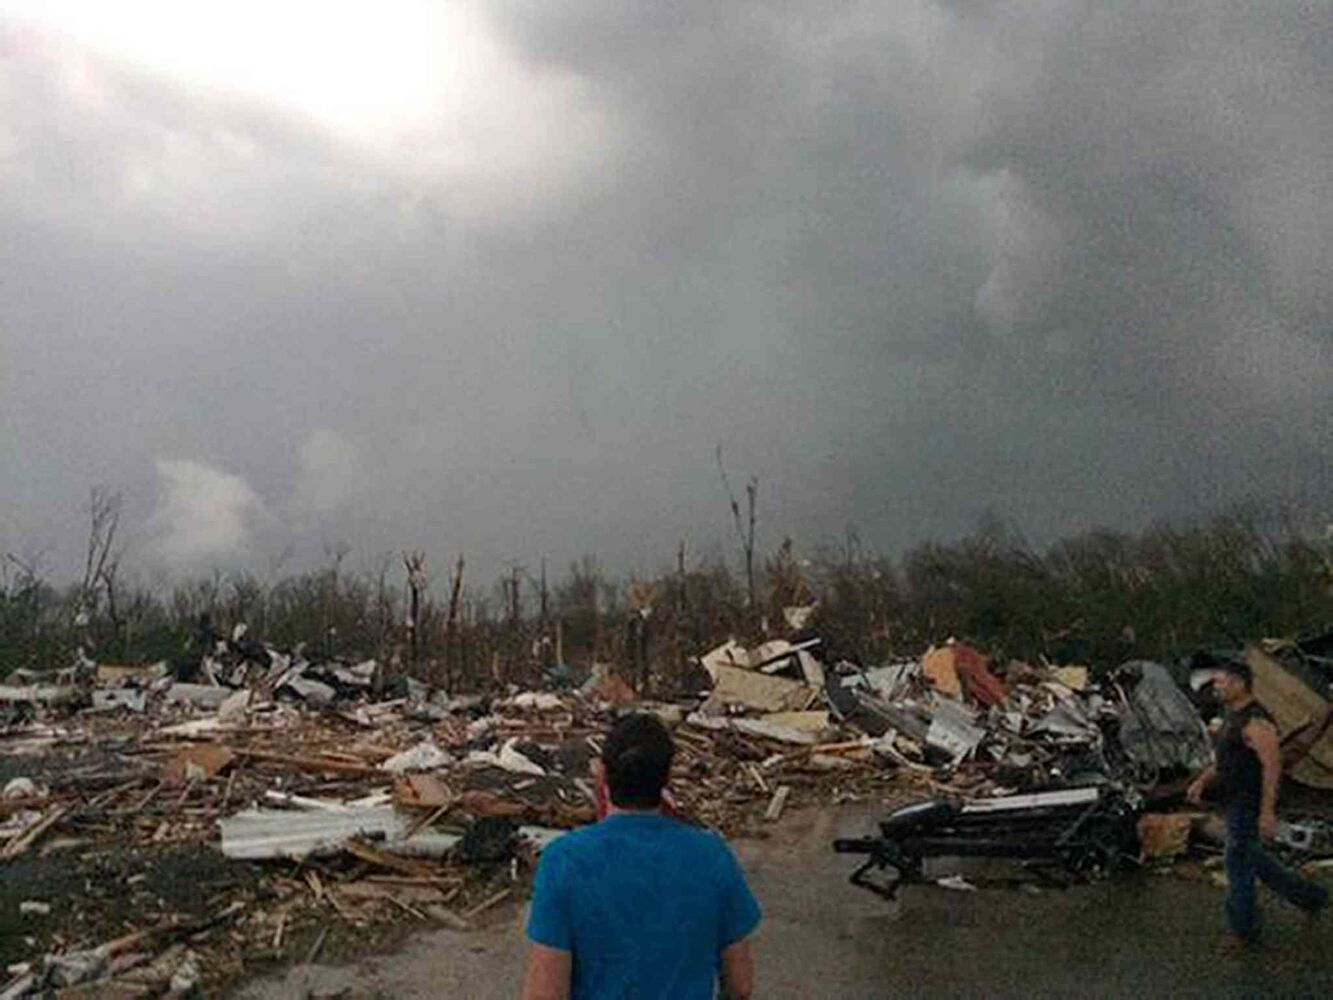 A man surveys the scene following a tornado touchdown in Mayflower, Ark., Sunday. A powerful storm system rumbled through the central and southern United States on Sunday, spawning several tornadoes, including one in a small northeastern Oklahoma city and another that carved a path of destruction through several northern suburbs of Little Rock, Ark.  (JAMES BRYANT / THE ASSOCIATED PRESS)